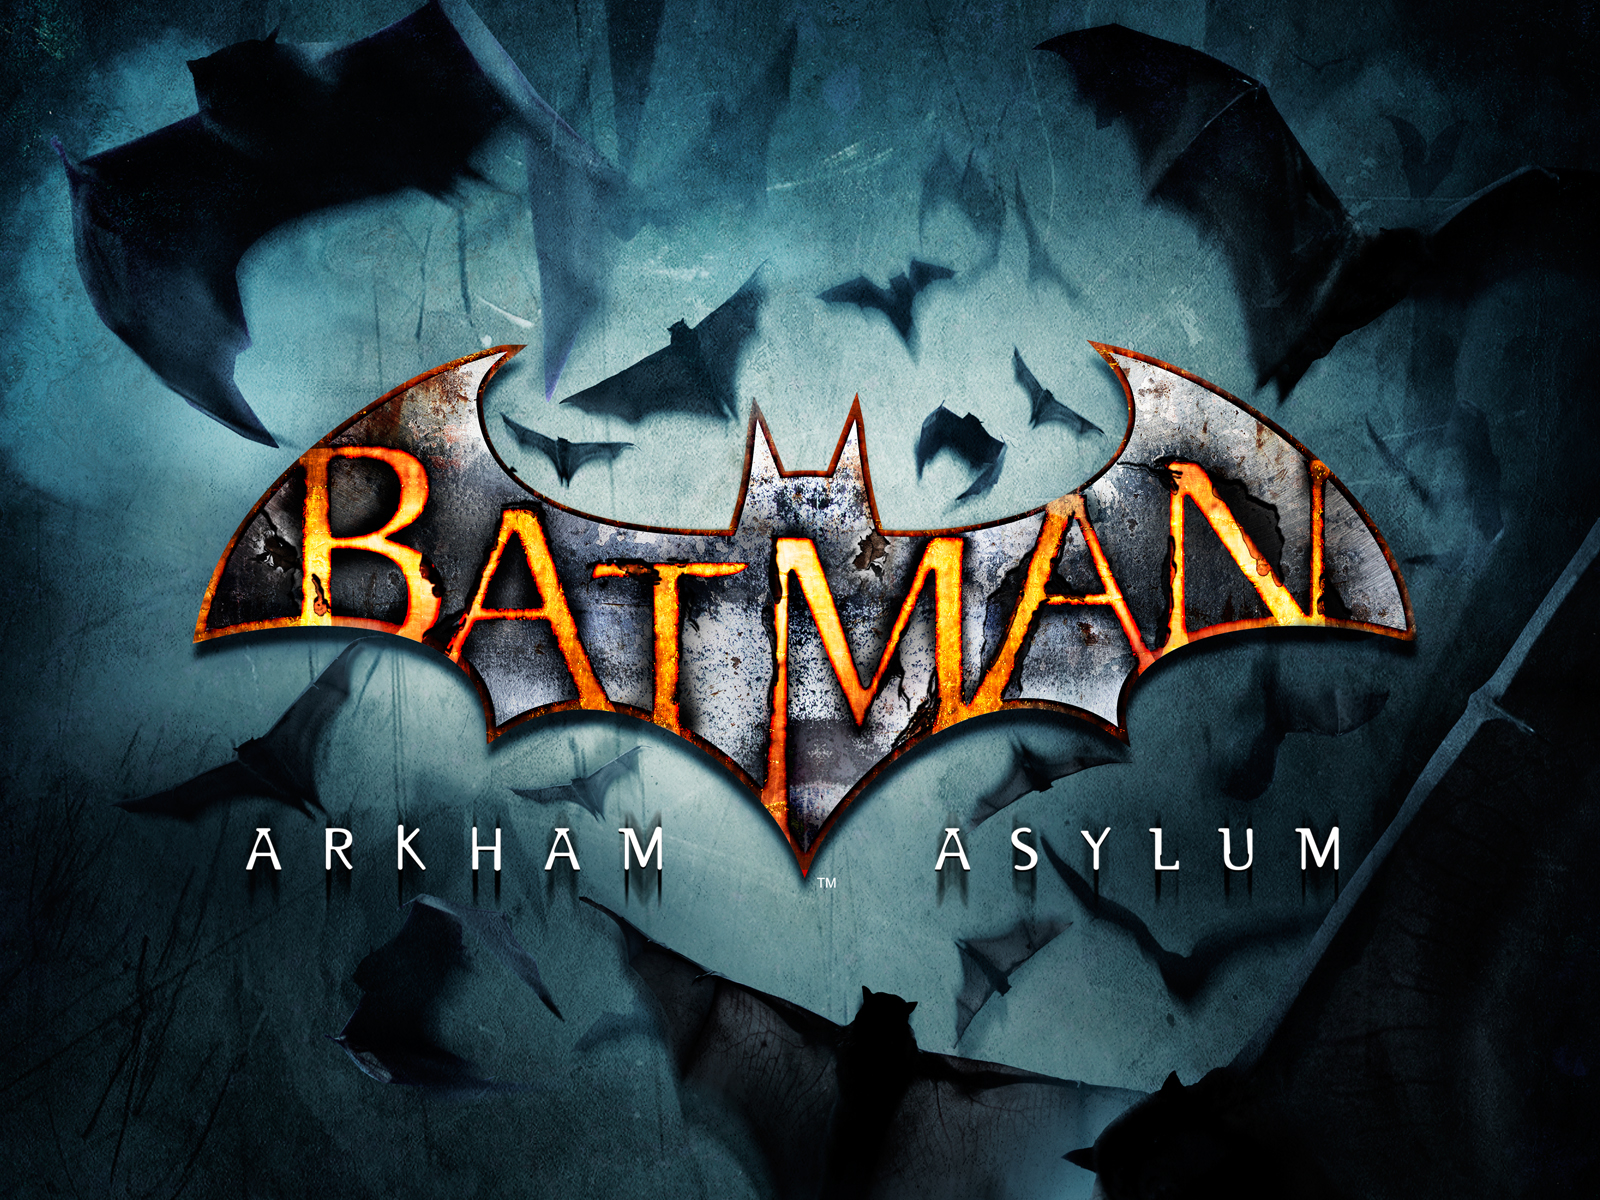 Batman Arkham Asylum Wallpaper: Fuwa Fuwa Reviews: Batman Arkham Asylum